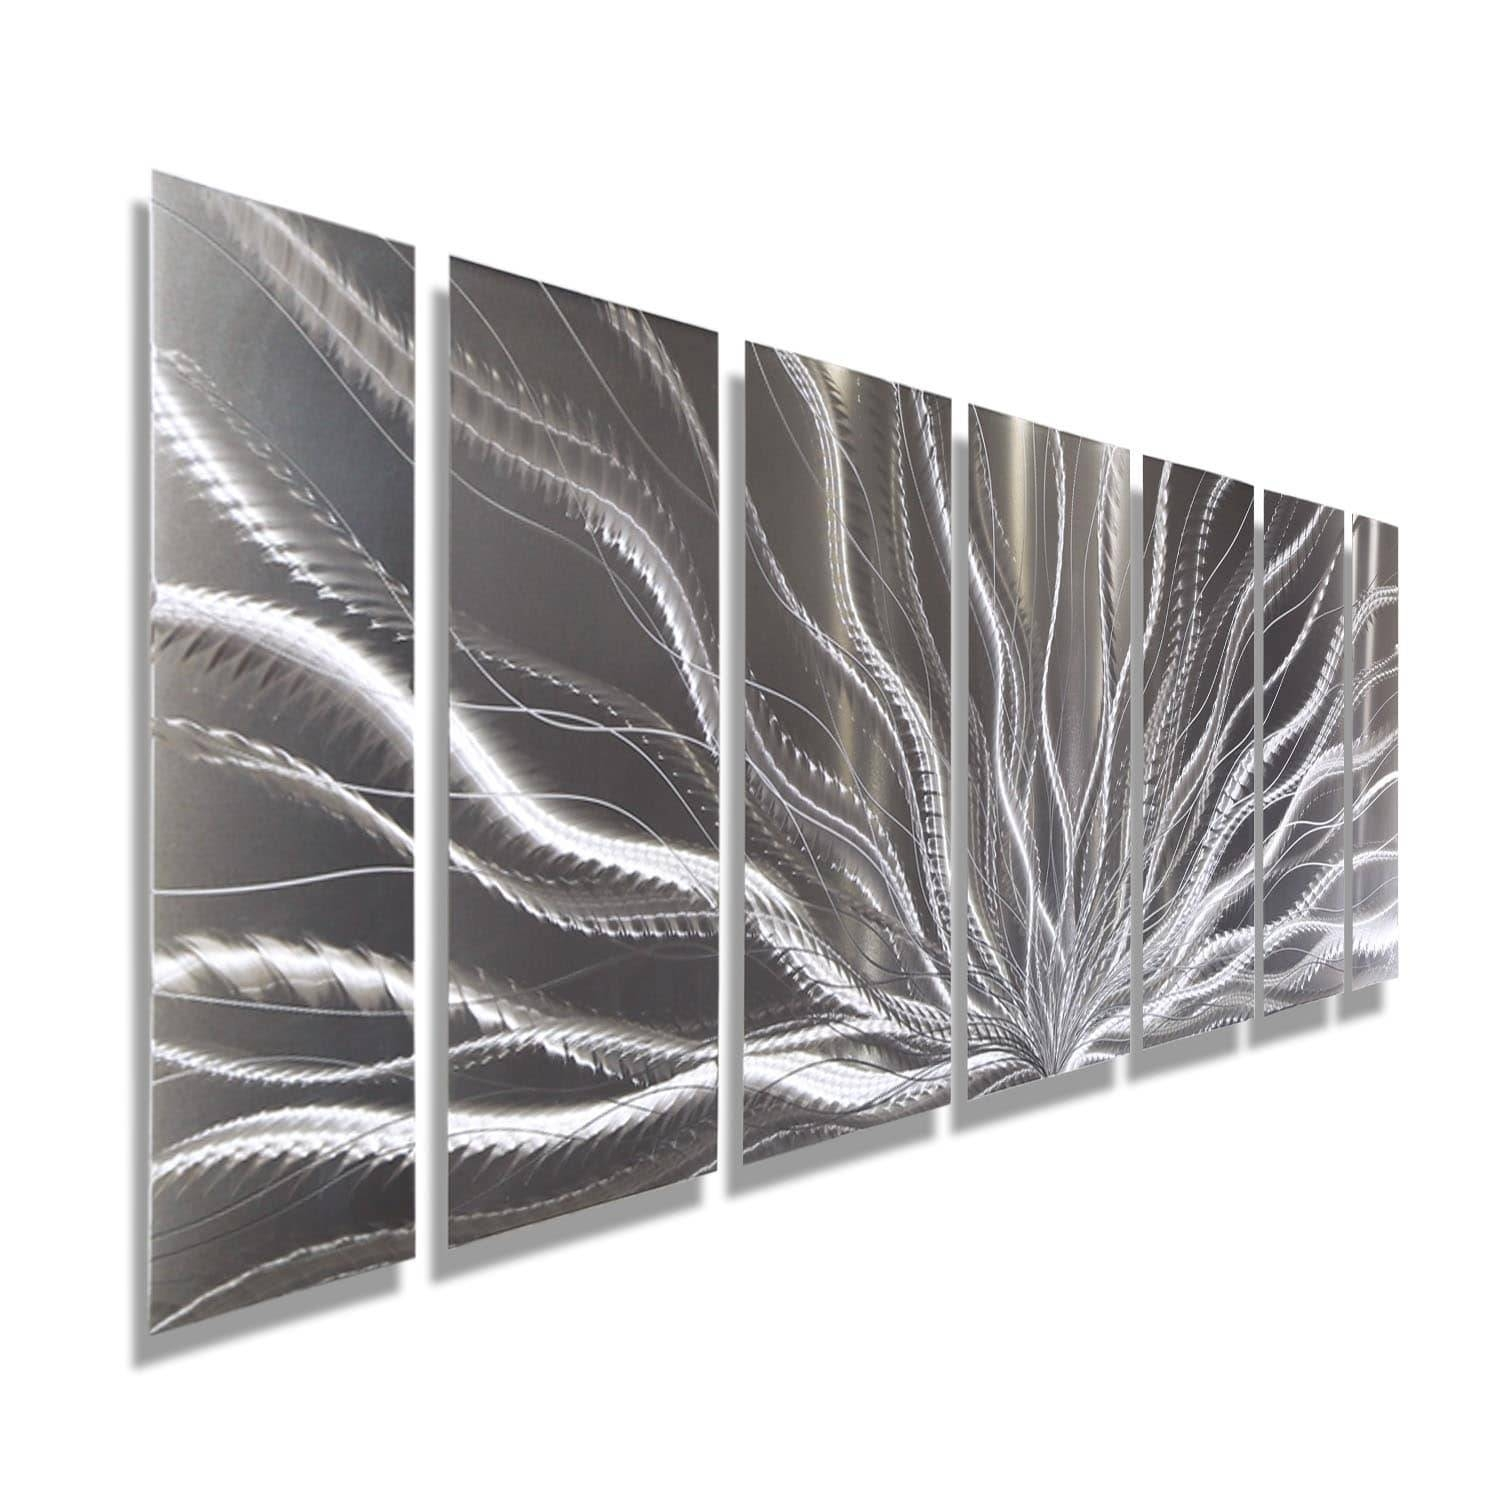 Statements2000 Silver Abstract Etched Metal Wall Art Sculpture For Newest Etched Metal Wall Art (View 14 of 20)